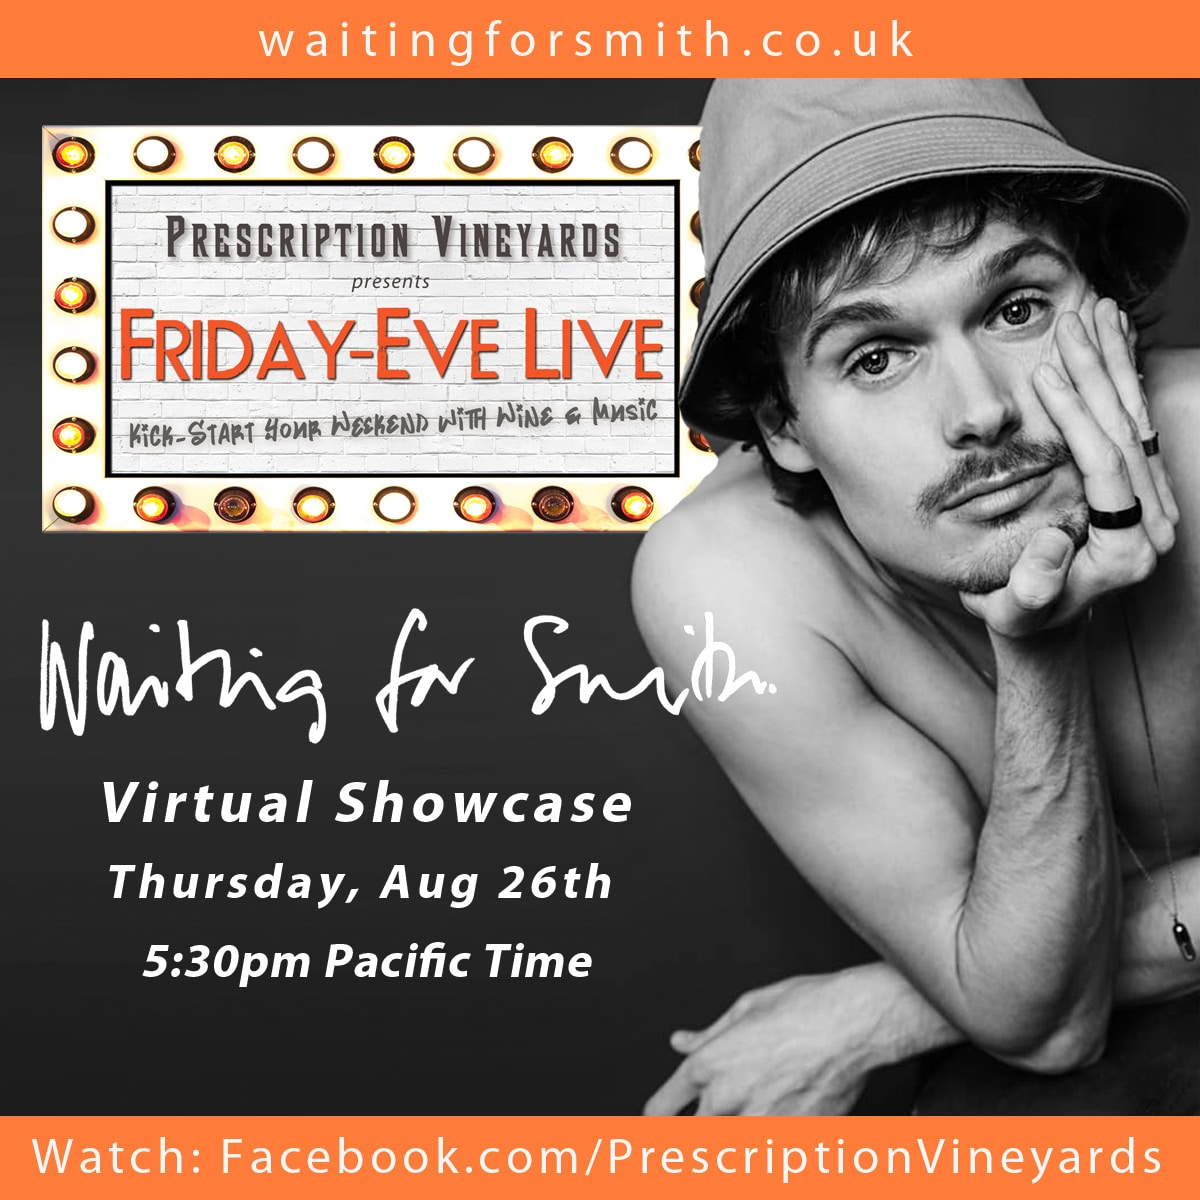 Friday-Eve Live features Waiting for Smith